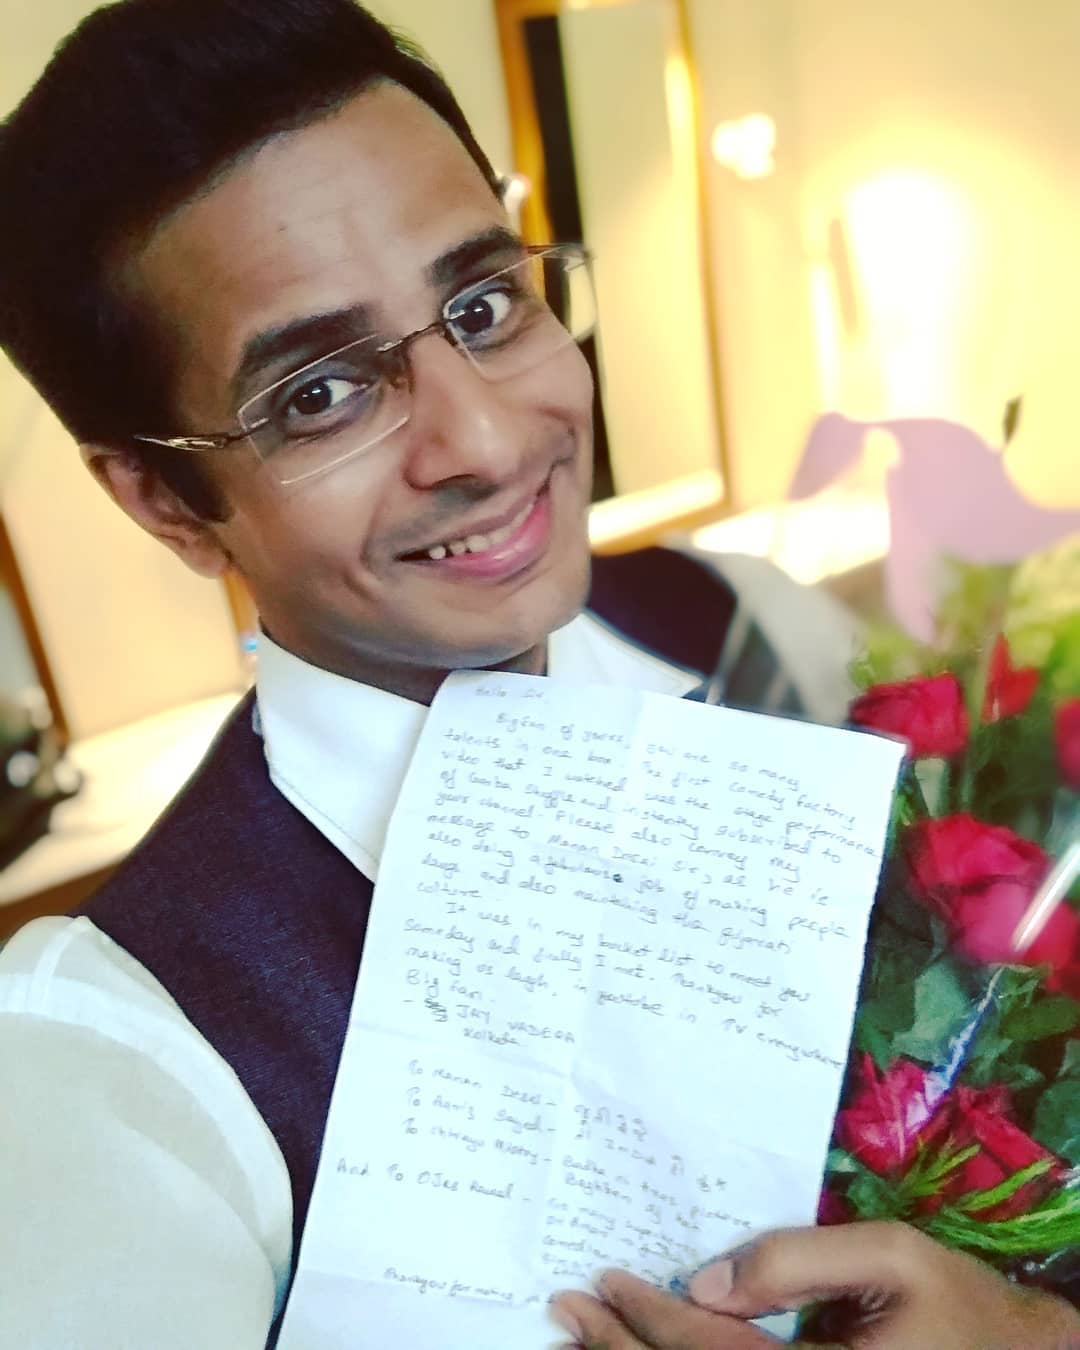 Ojas Rawal,  fanmail, letters, love, fans, OjasRawal, actor, comedian, happyme, selfie, roses, flowers, smile, letter, gujarati, show, gujju, fanmoment, gifts, blessed, loveit, ojas, awesome, sohappy, mademyday, yay, me, aww, fanlove, thankyou, thanks